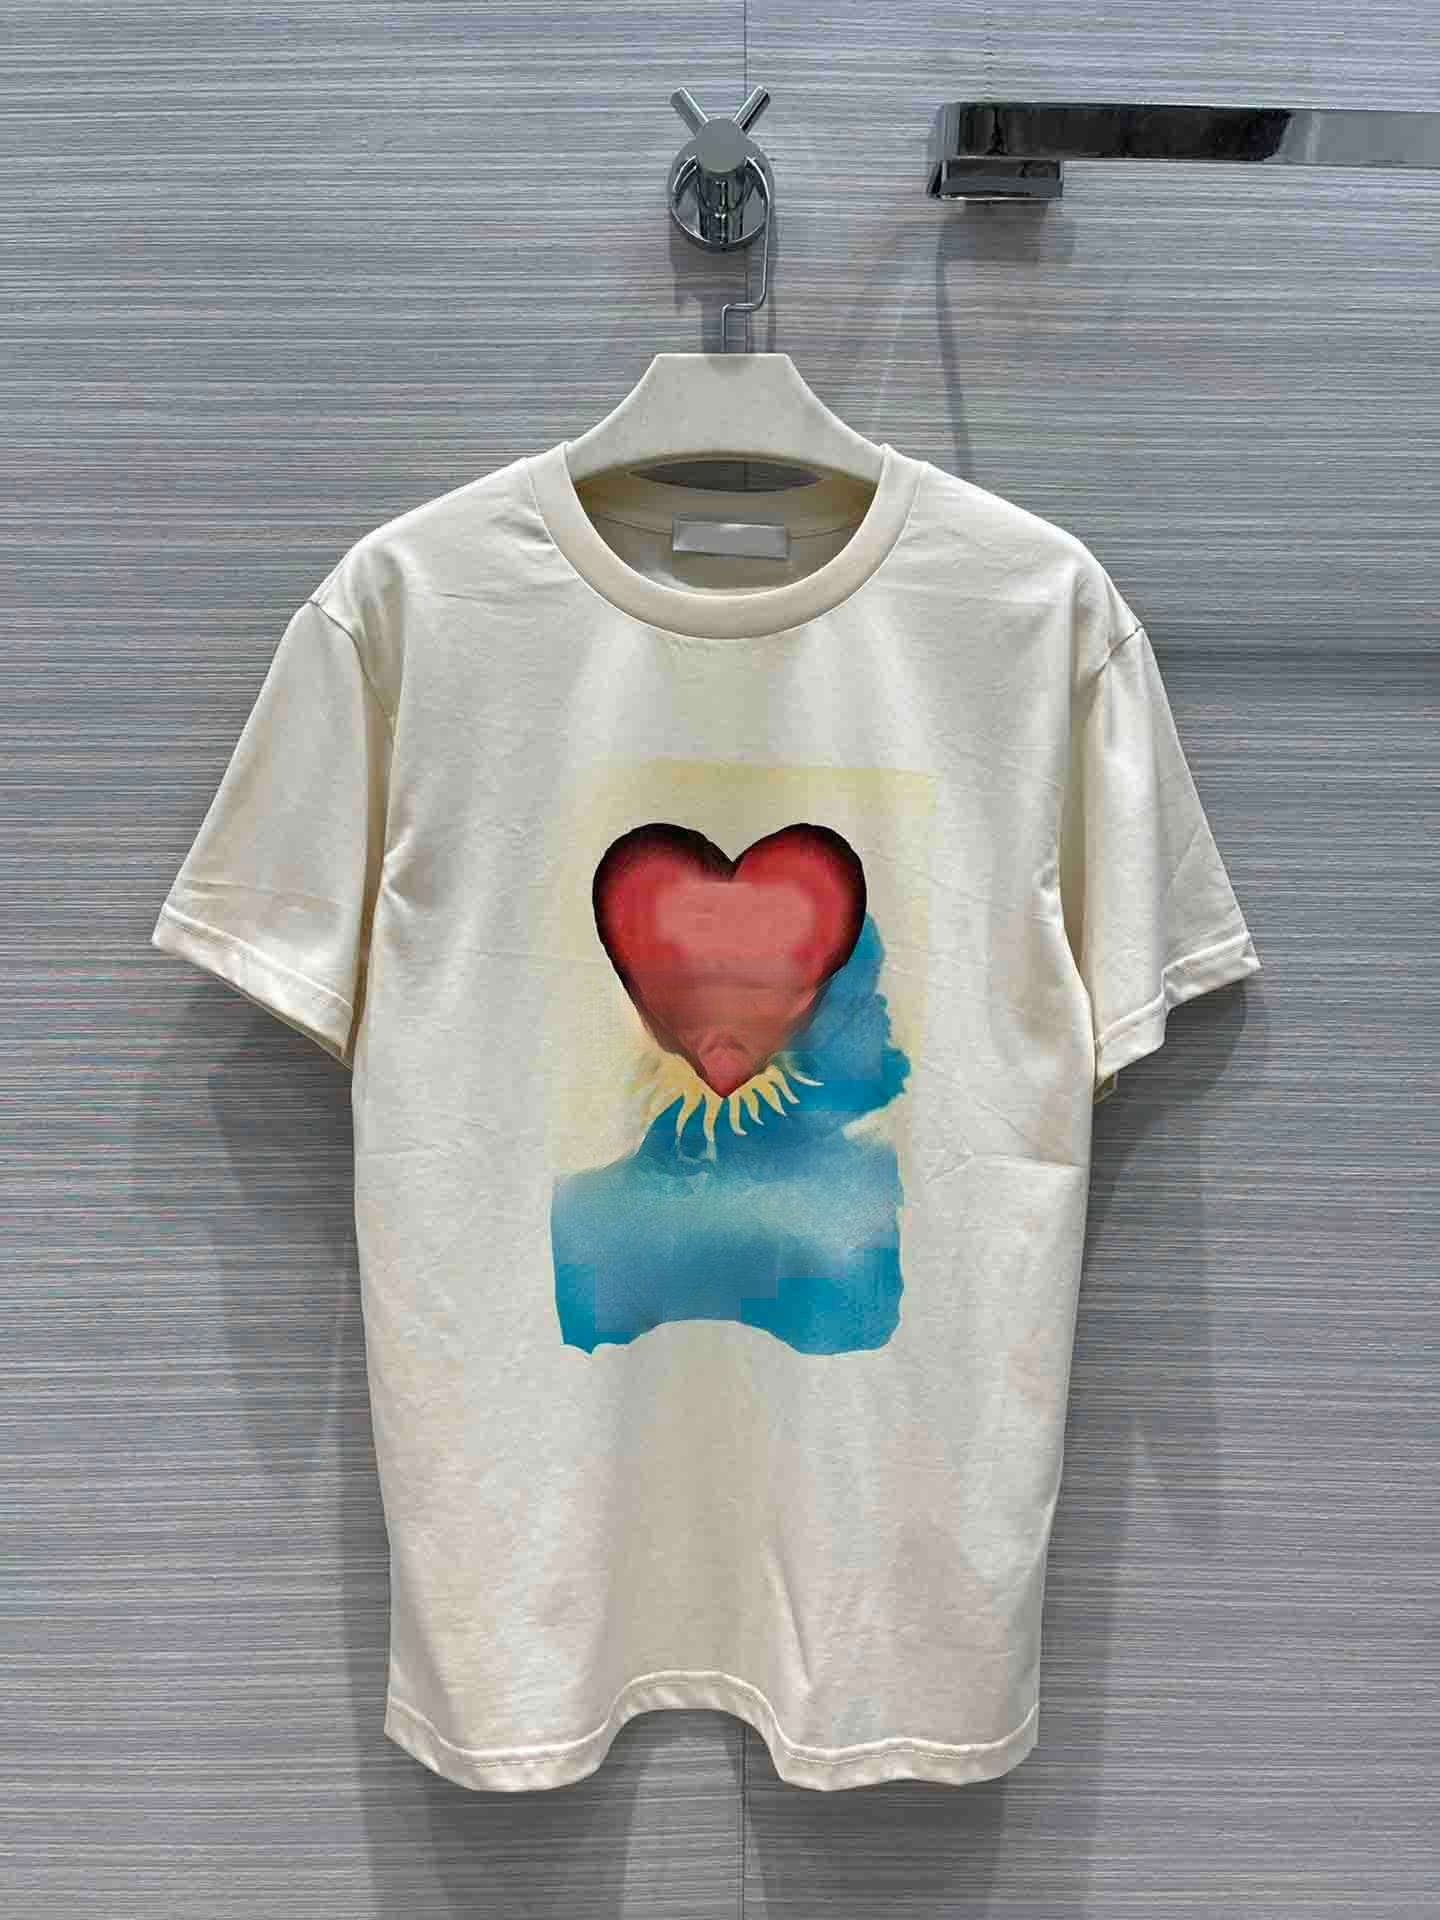 Luxury Heart Print Casual T-shirts for Women Summer 2021 High-end Brand Soft Short Sleeve O-neck Loose Beige Silk Blended Tshirt